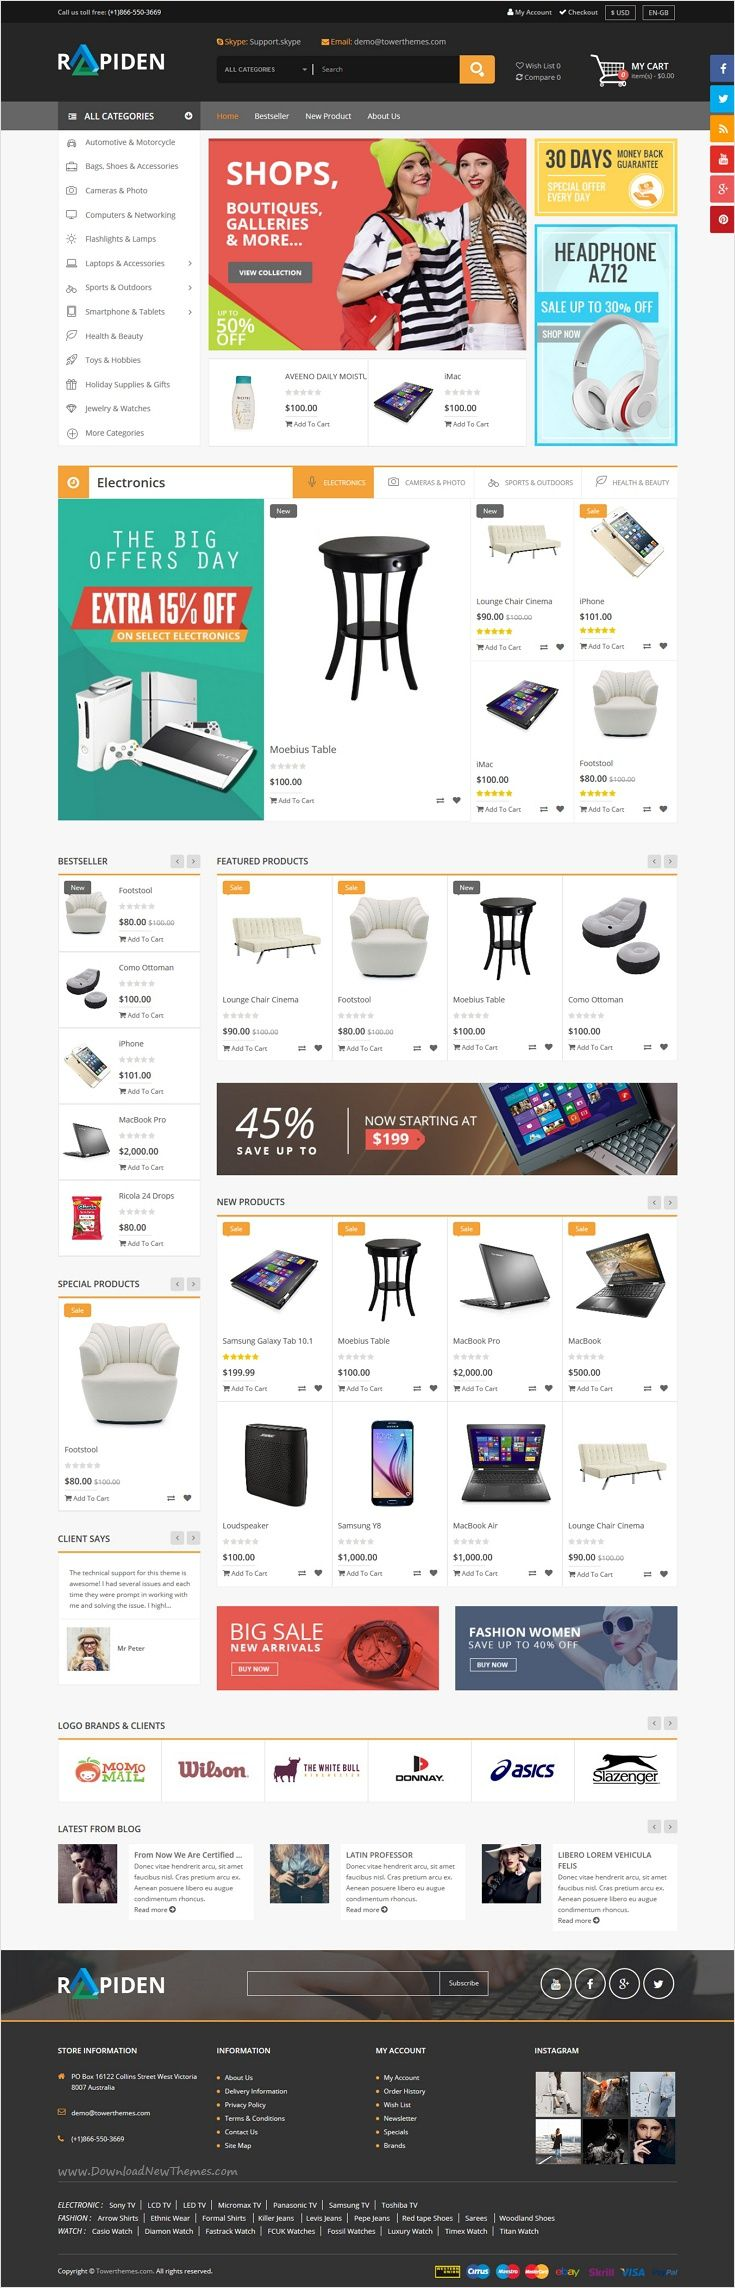 Rapiden is a wonderful responsive #Megashop #Opencart #theme for large online stores website with 4 modern layout download now➩ https://themeforest.net/item/rapiden-mega-shop-responsive-opencart-theme/18567232?ref=Datasata